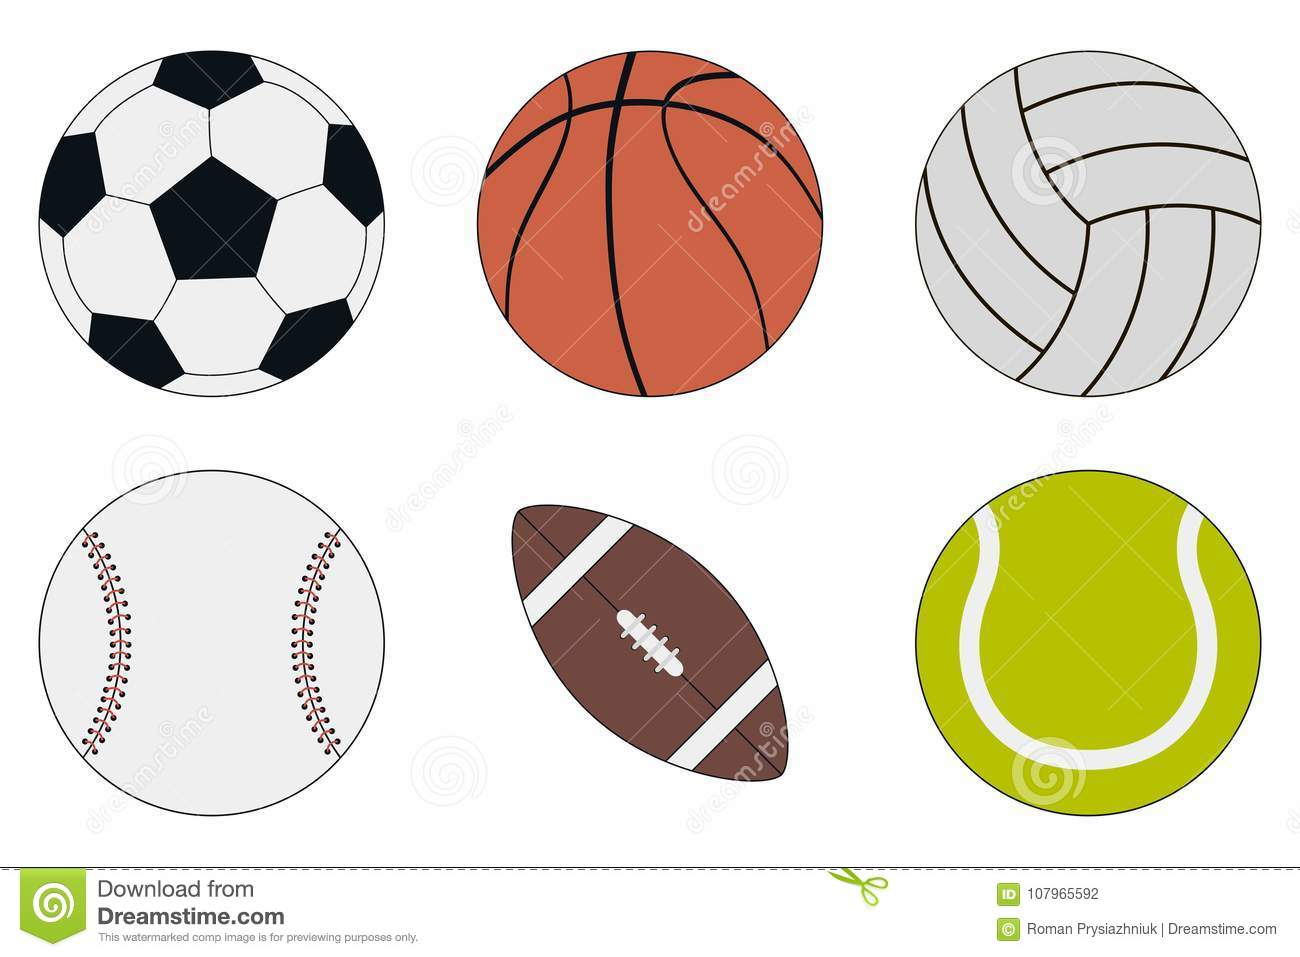 Sports Balls icon set - soccer, basketball, volleyball, baseball, american football and tennis. Vector.